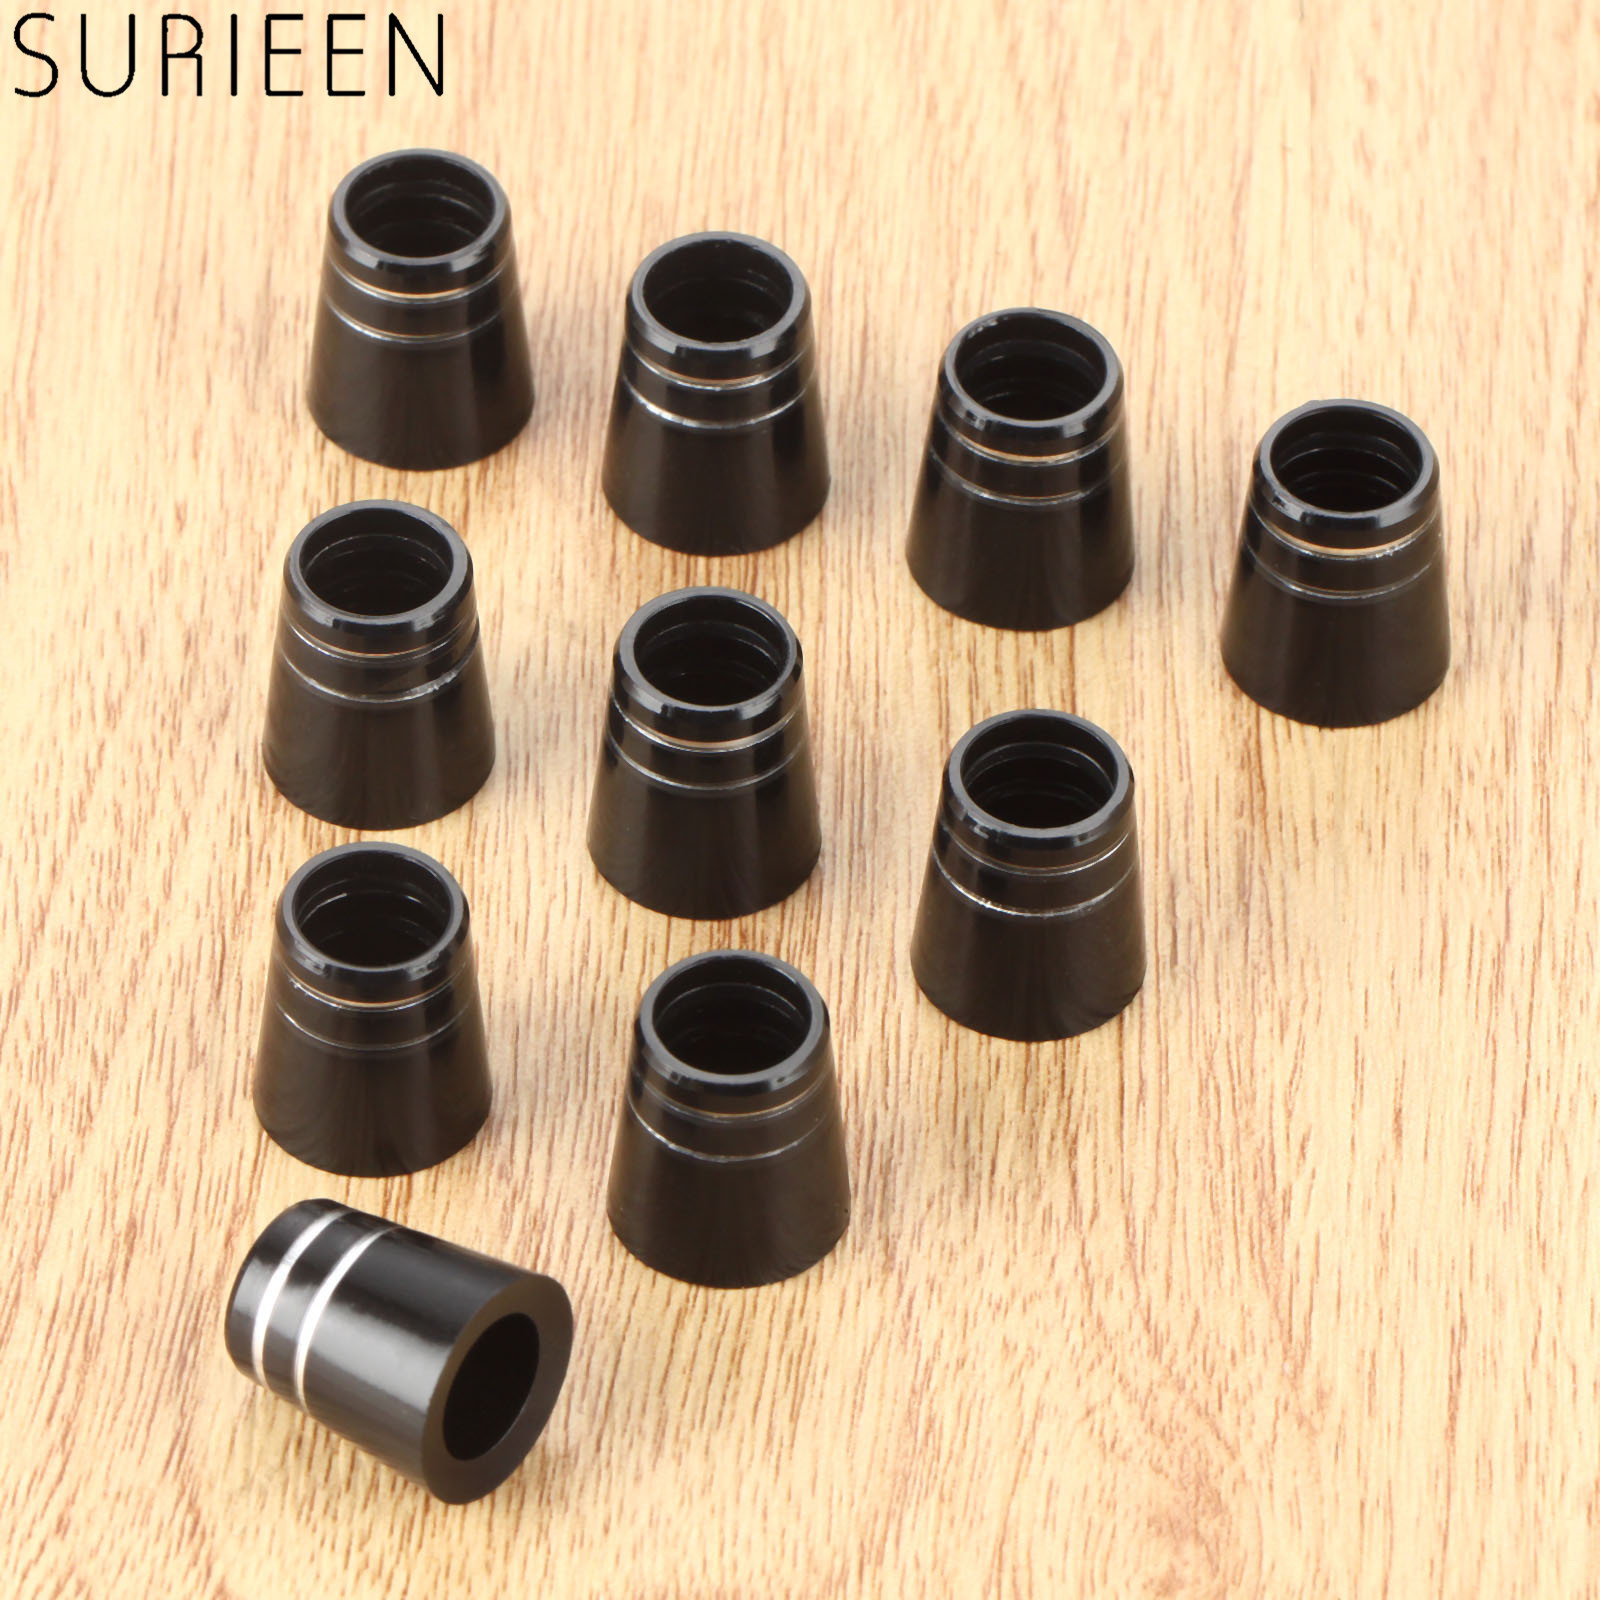 SURIEEN 10pcs Plastic Golf Club Ferrules With Double Ring For 0.335 Inch Tip Irons Shaft 15mm Golf Sleeve Ferrule Replacements